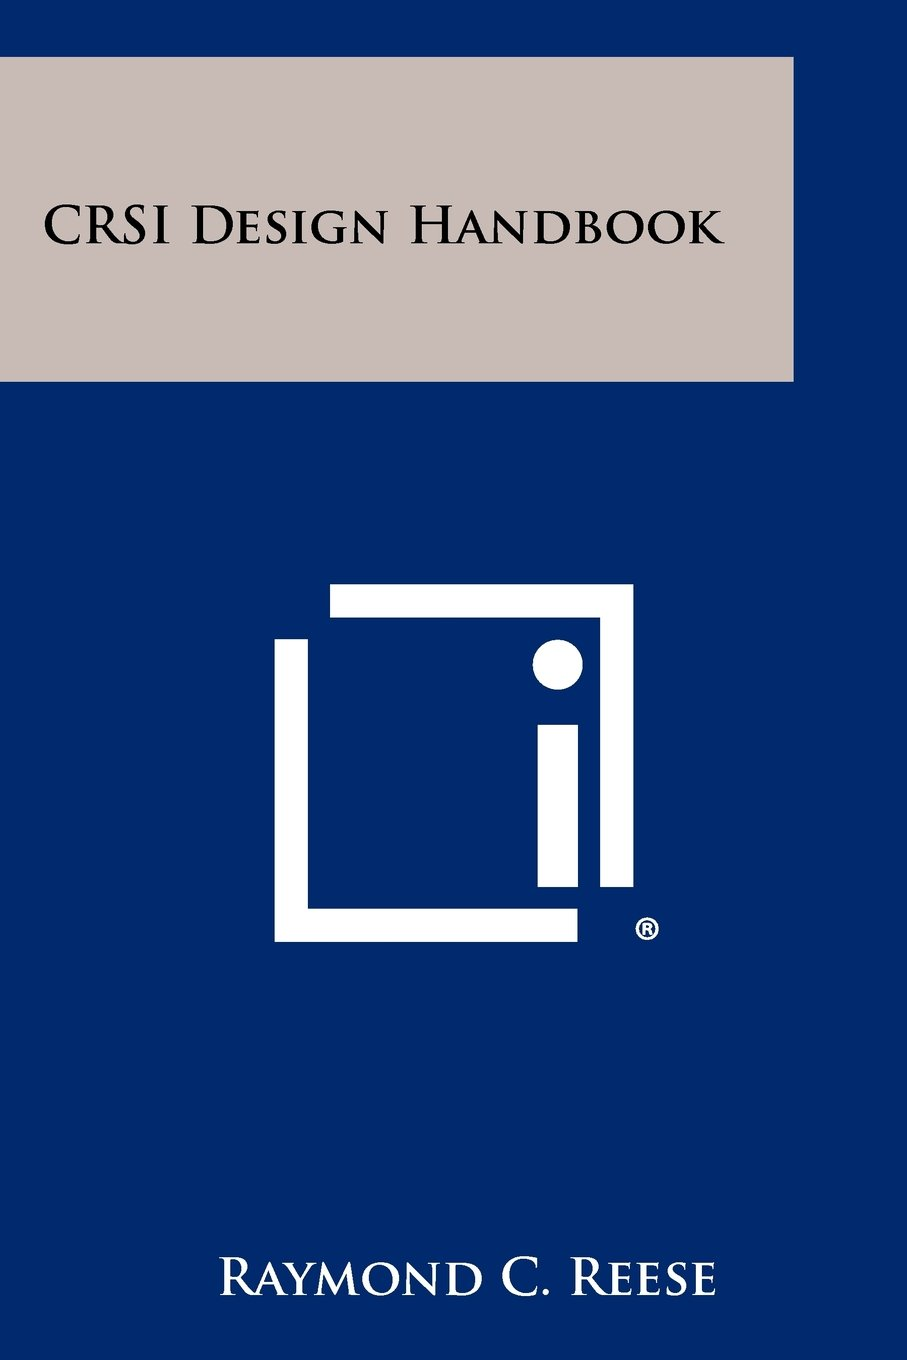 Crsi design handbook, 2008: amazon. Com: books.